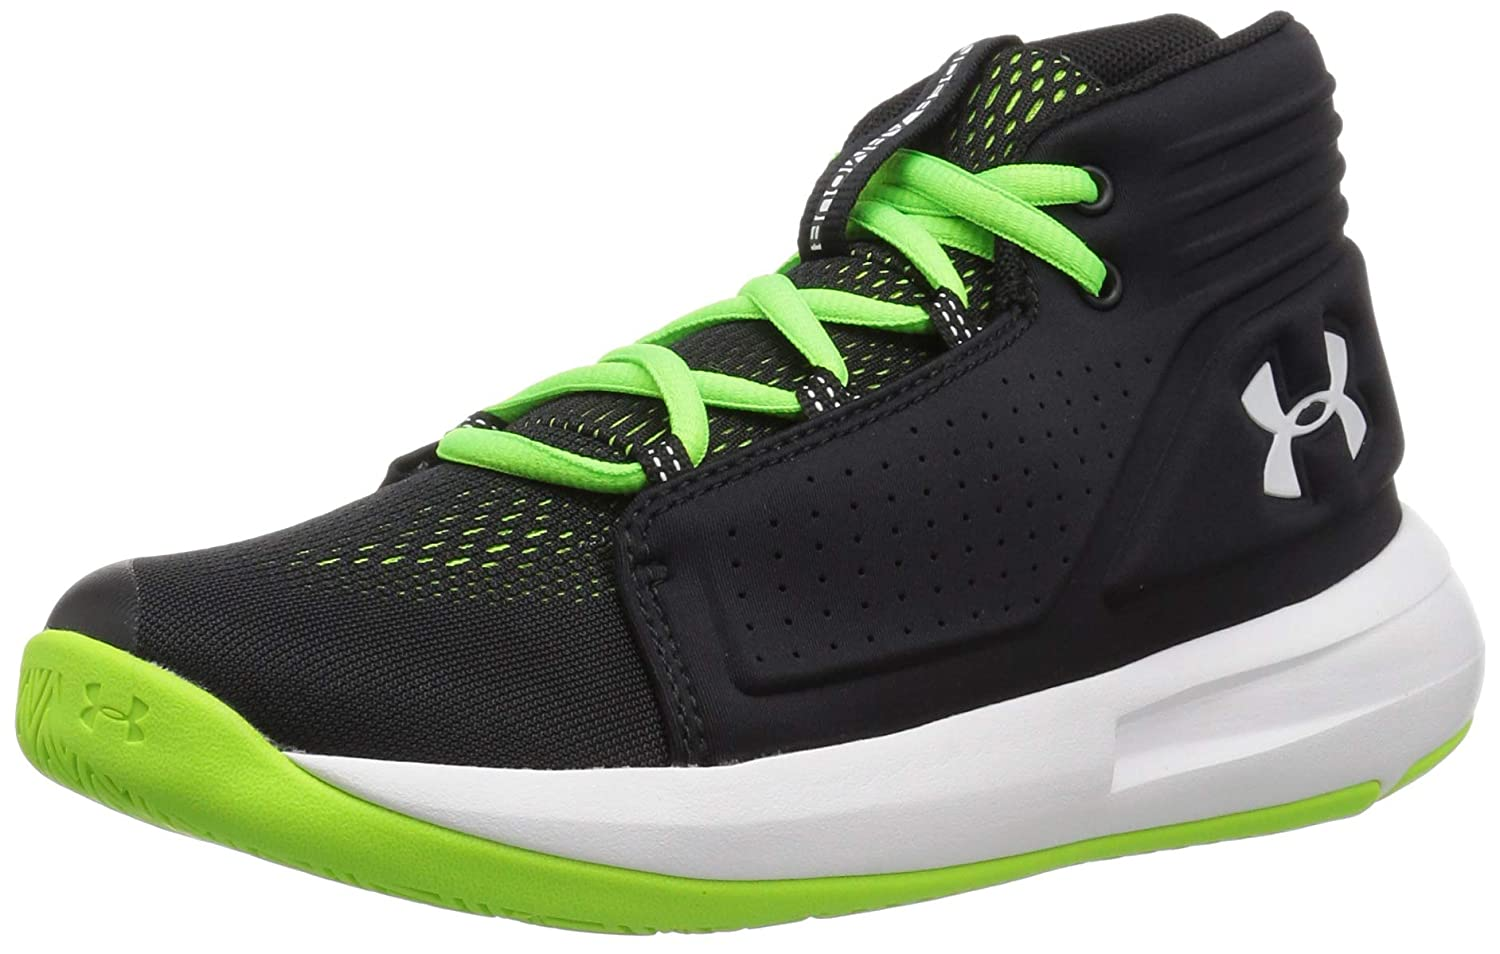 Under Armour Kids' Pre School Torch Mid Basketball Shoe 3020429